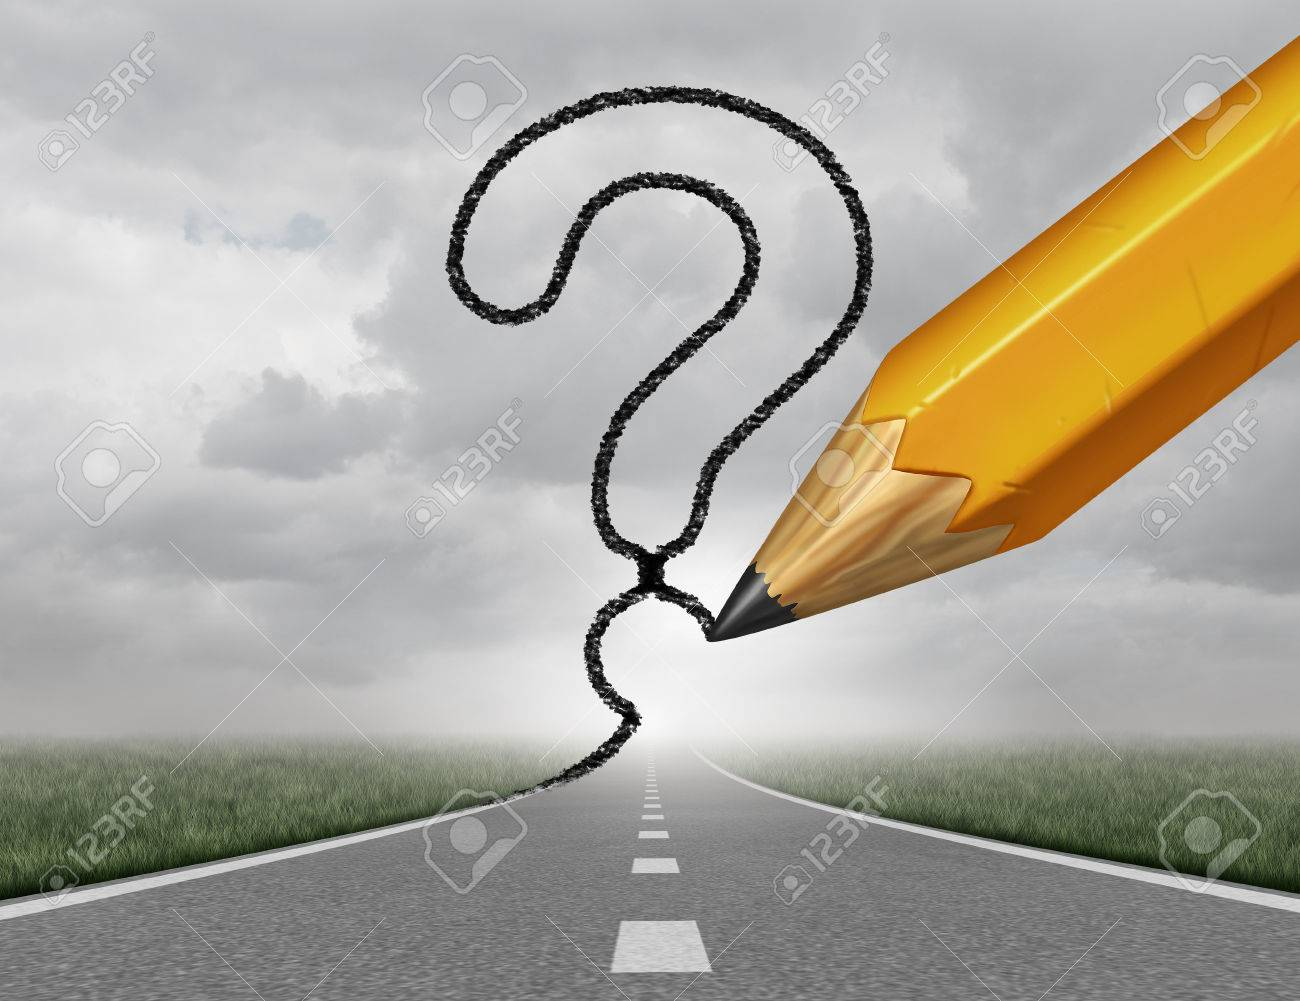 Business path questions road to change and corporate career pathway as a rising highway with a 3D illustration pencil drawing a question mark on a sky representing financial direction guidance and looking for answers. Stock Illustration - 55347946